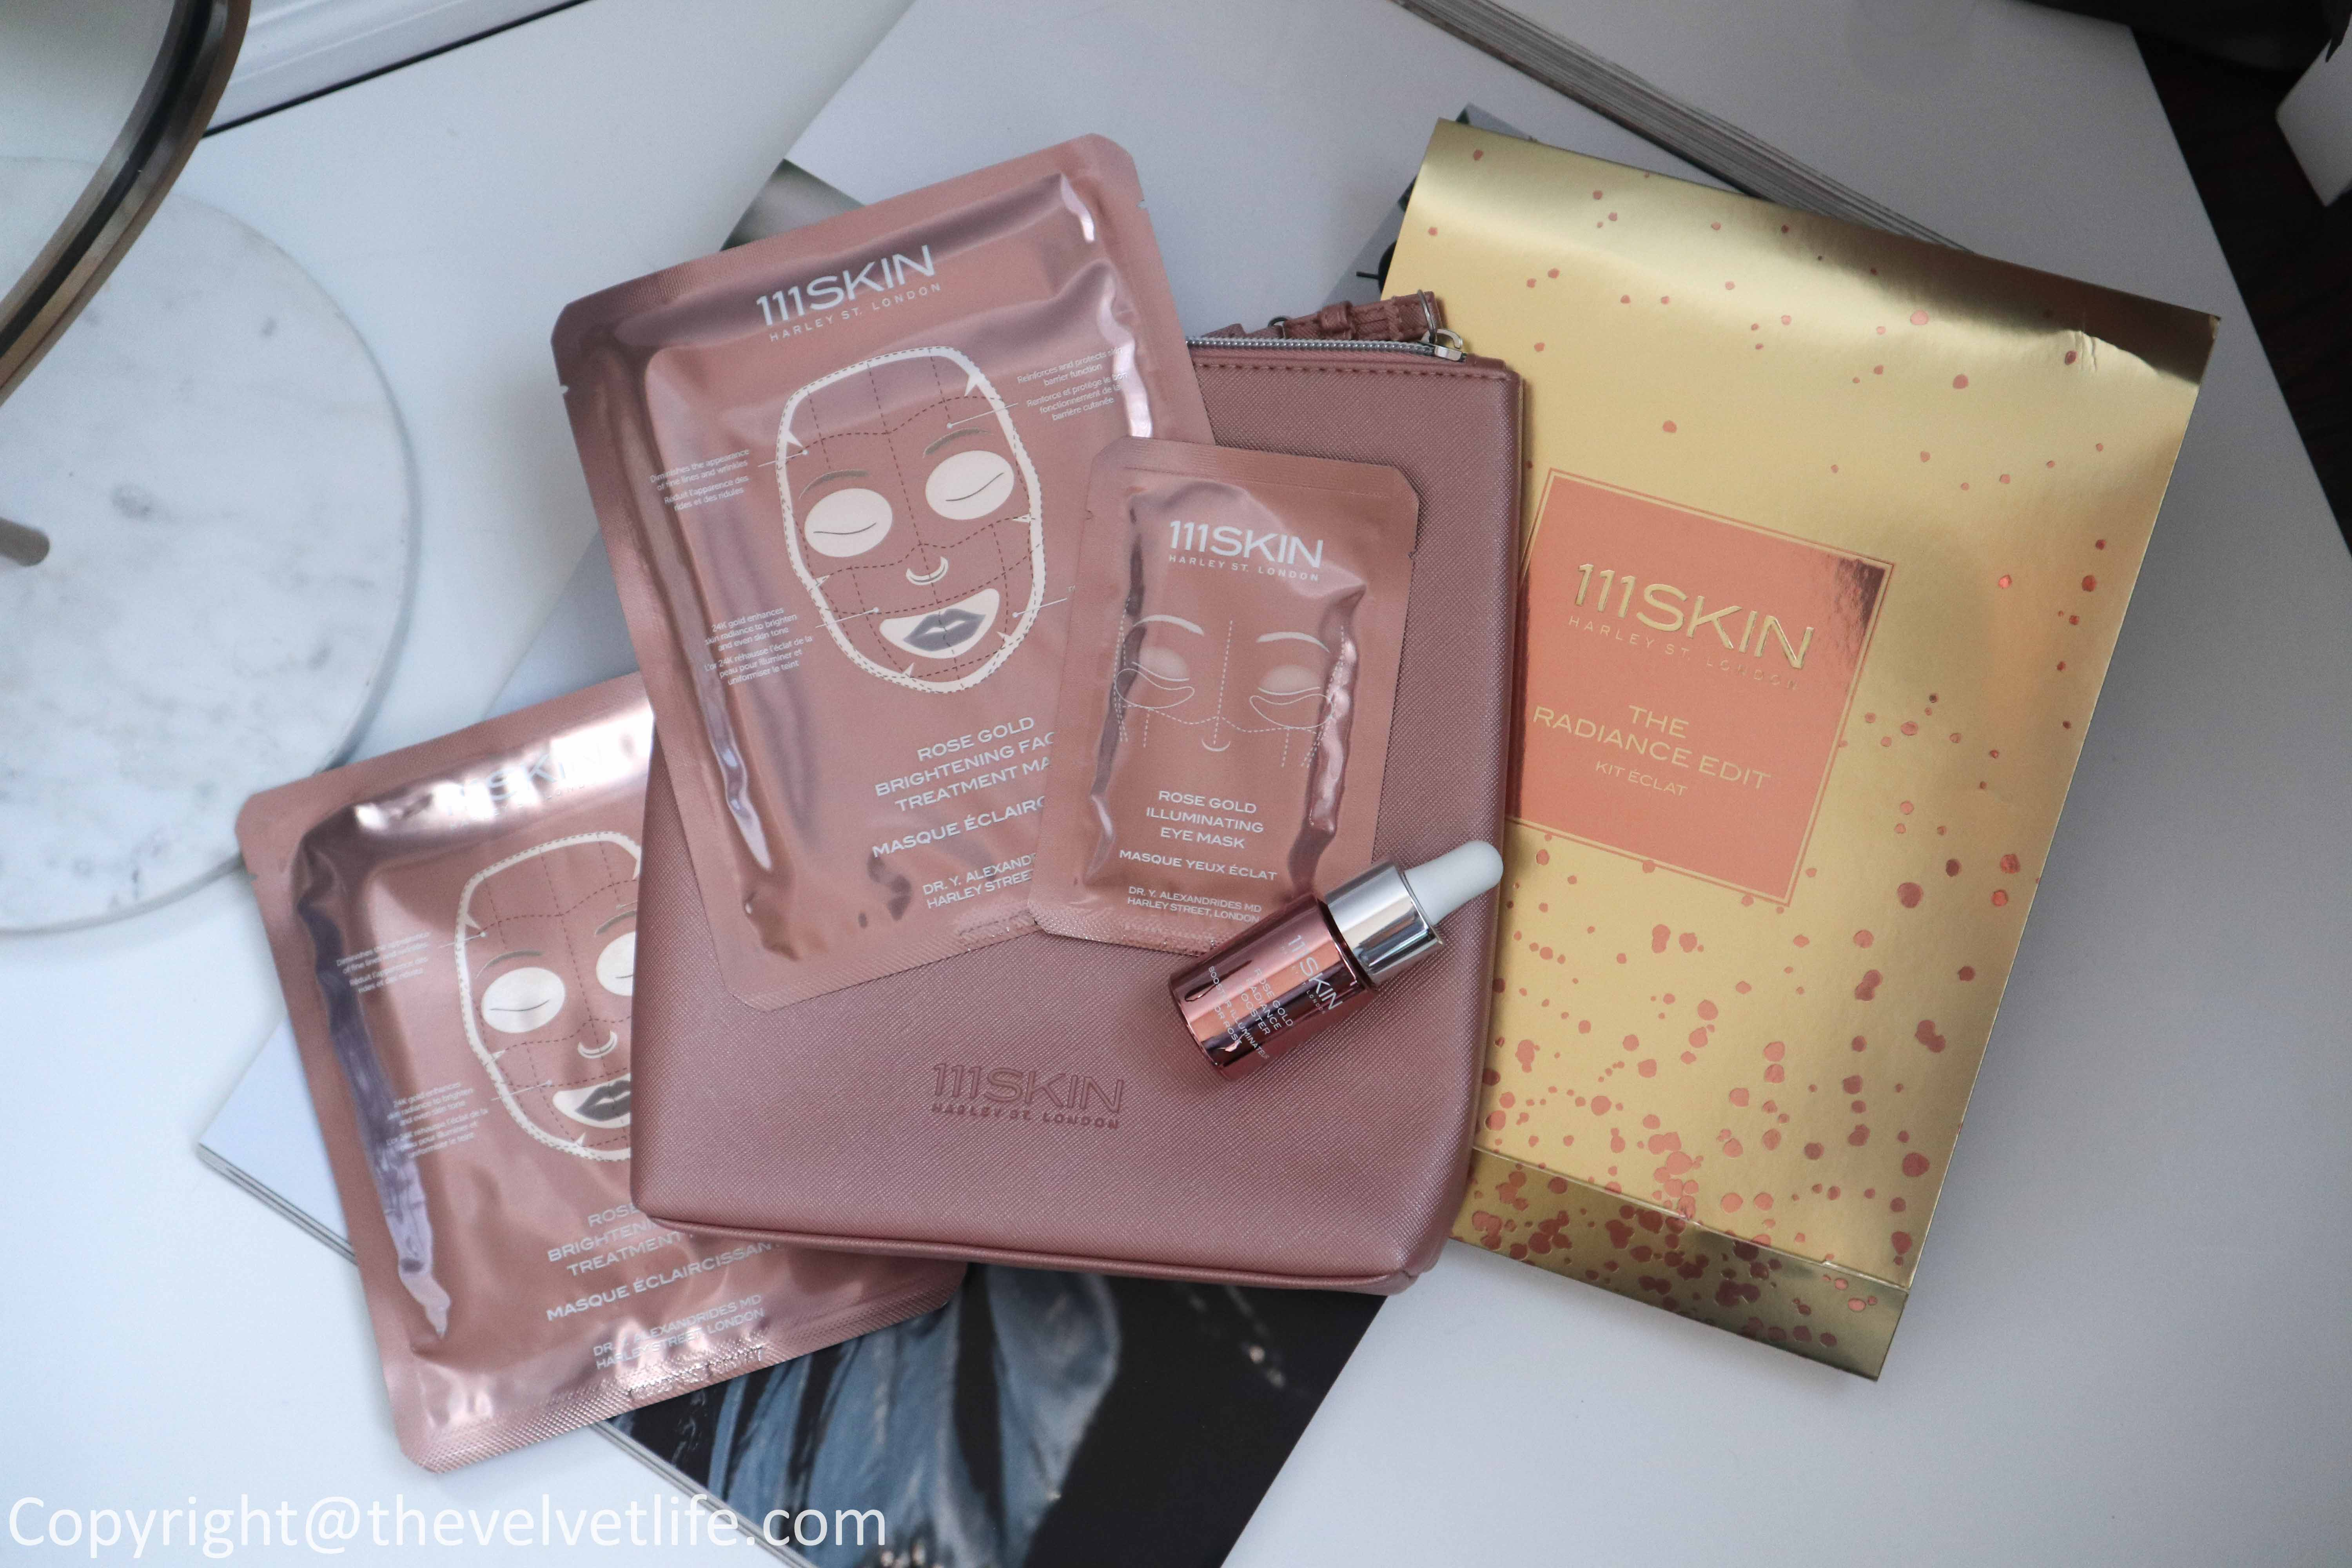 111Skin review The Intensive Kit Vitamin C Brightening Booster, Celestial Black Diamond Lifting and Firming Treatment Mask, 111Skin The Radiance Kit Rose Gold Illuminating Eye Mask, Rose Gold Brightening Facial Treatment Mask, Rose Gold Radiance Booster